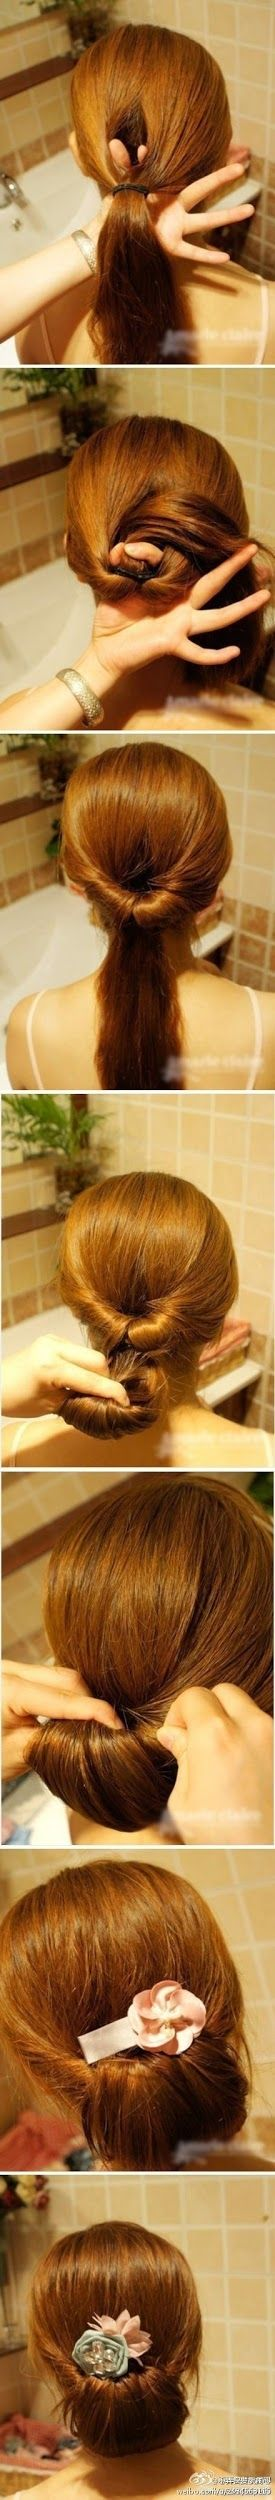 Make a Simple updo | hairstyles tutorial by Hairstyle Tutorials